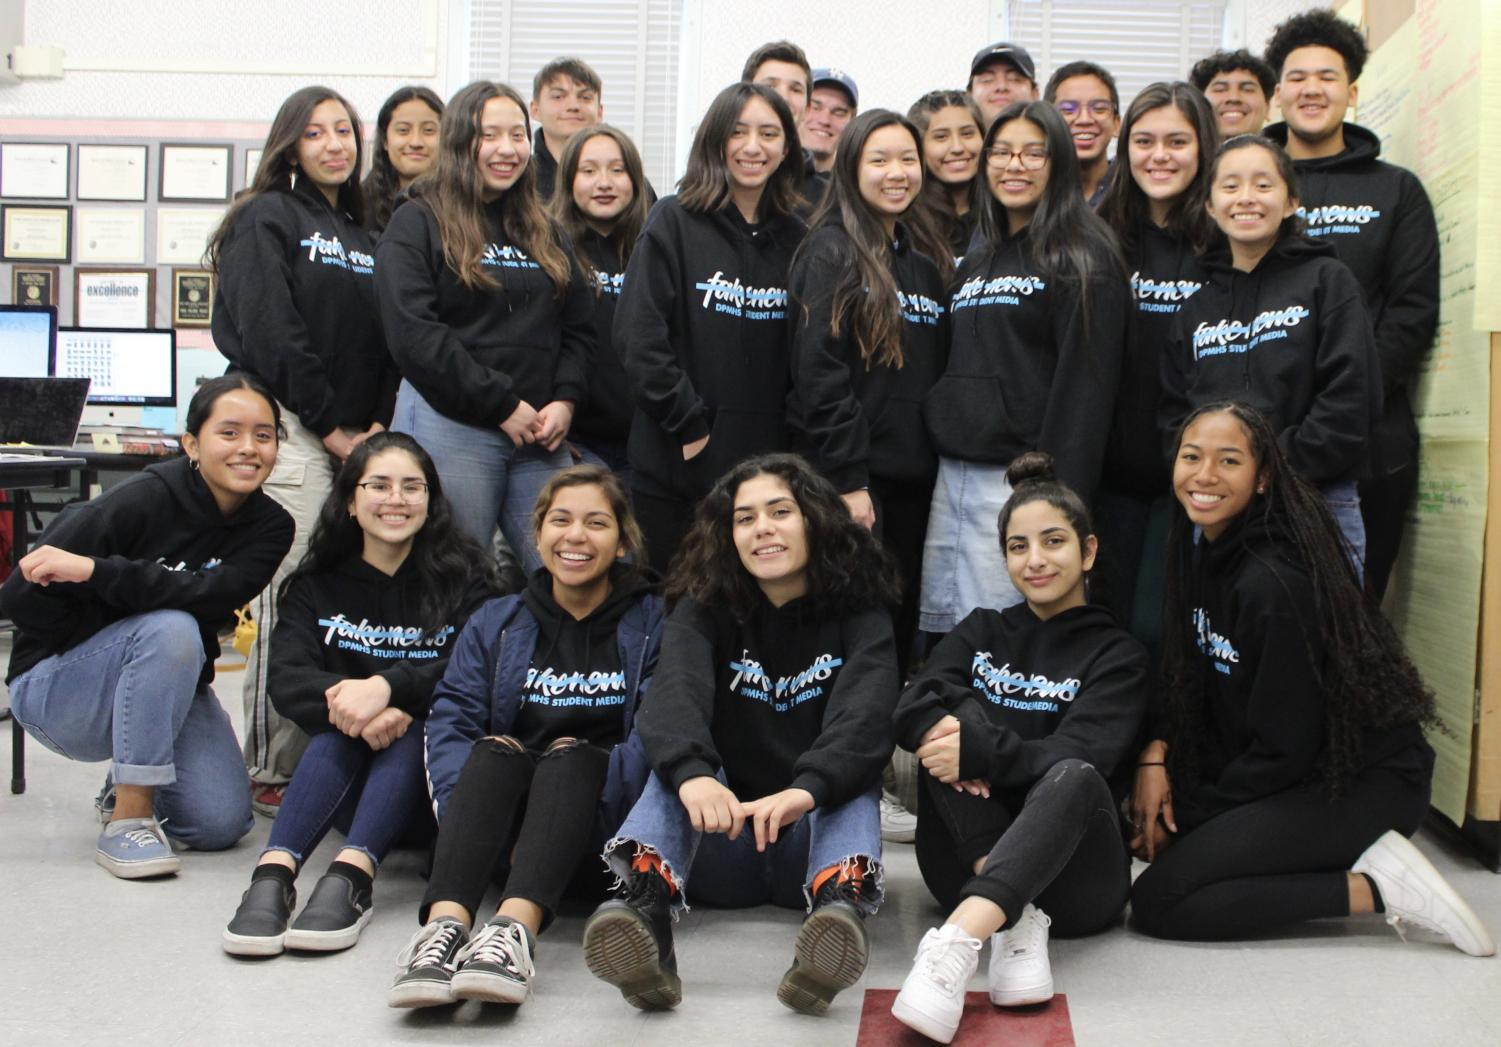 The staff of The Pearl Post and Prestige Yearbook wore their Not Fake News hoodies on Student Press Freedom Day, which is Jan. 29.